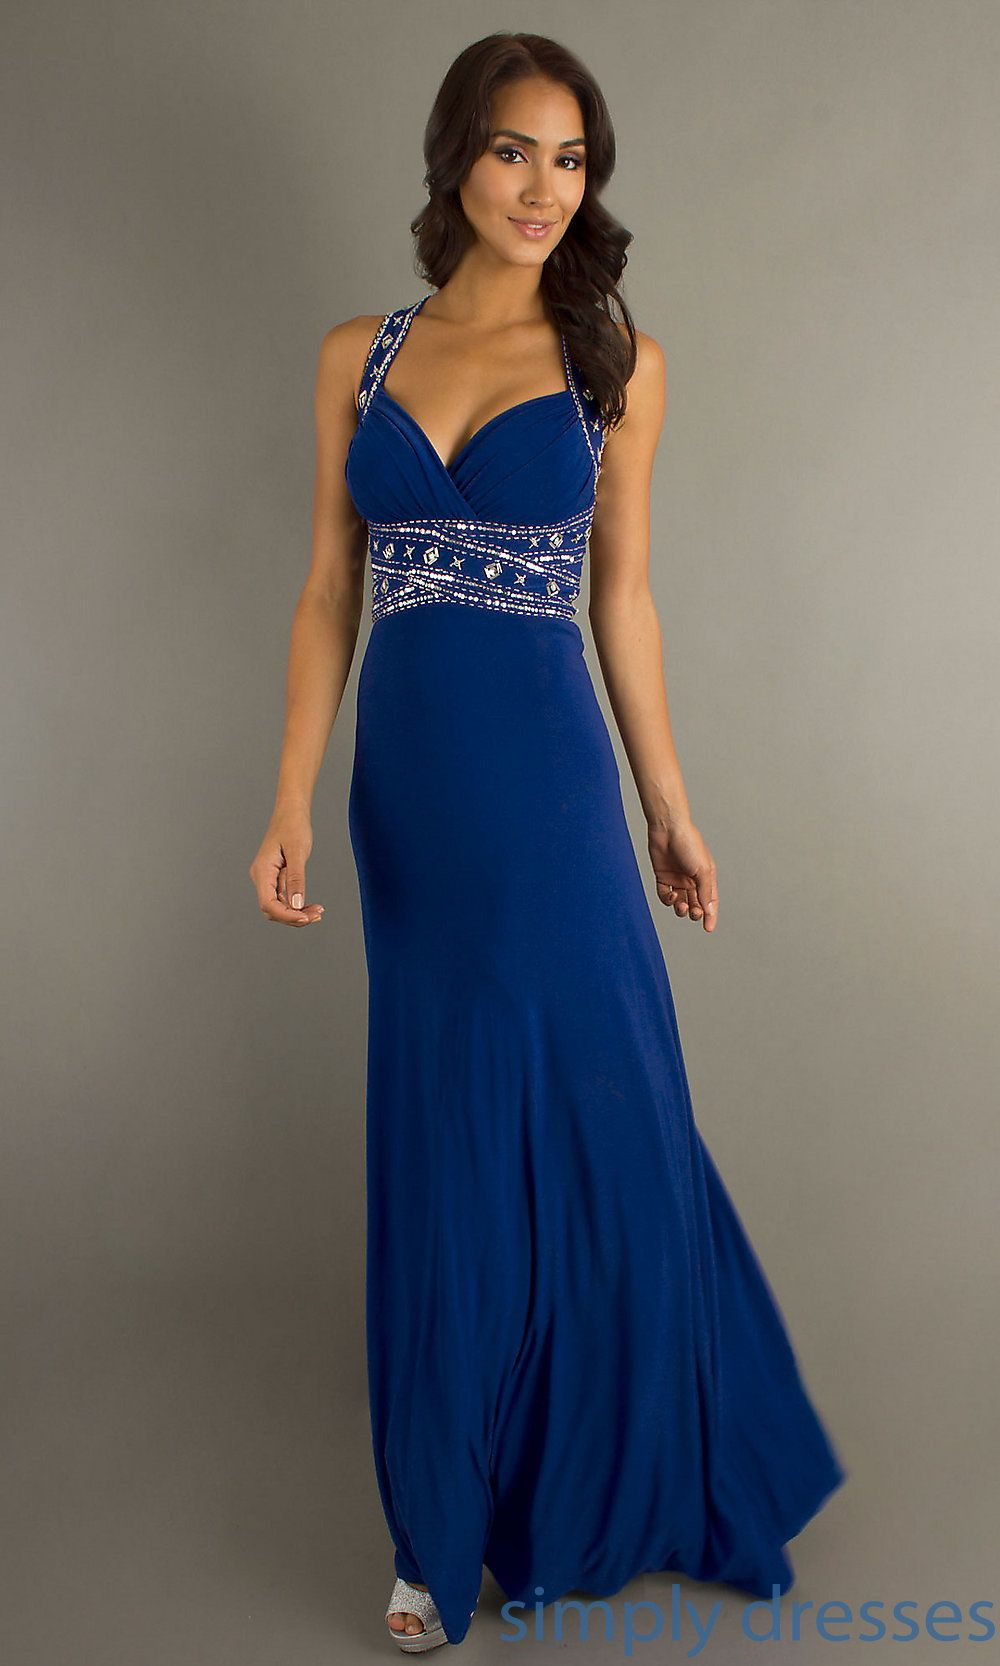 Dq floor length dress with embellished waist shops prom